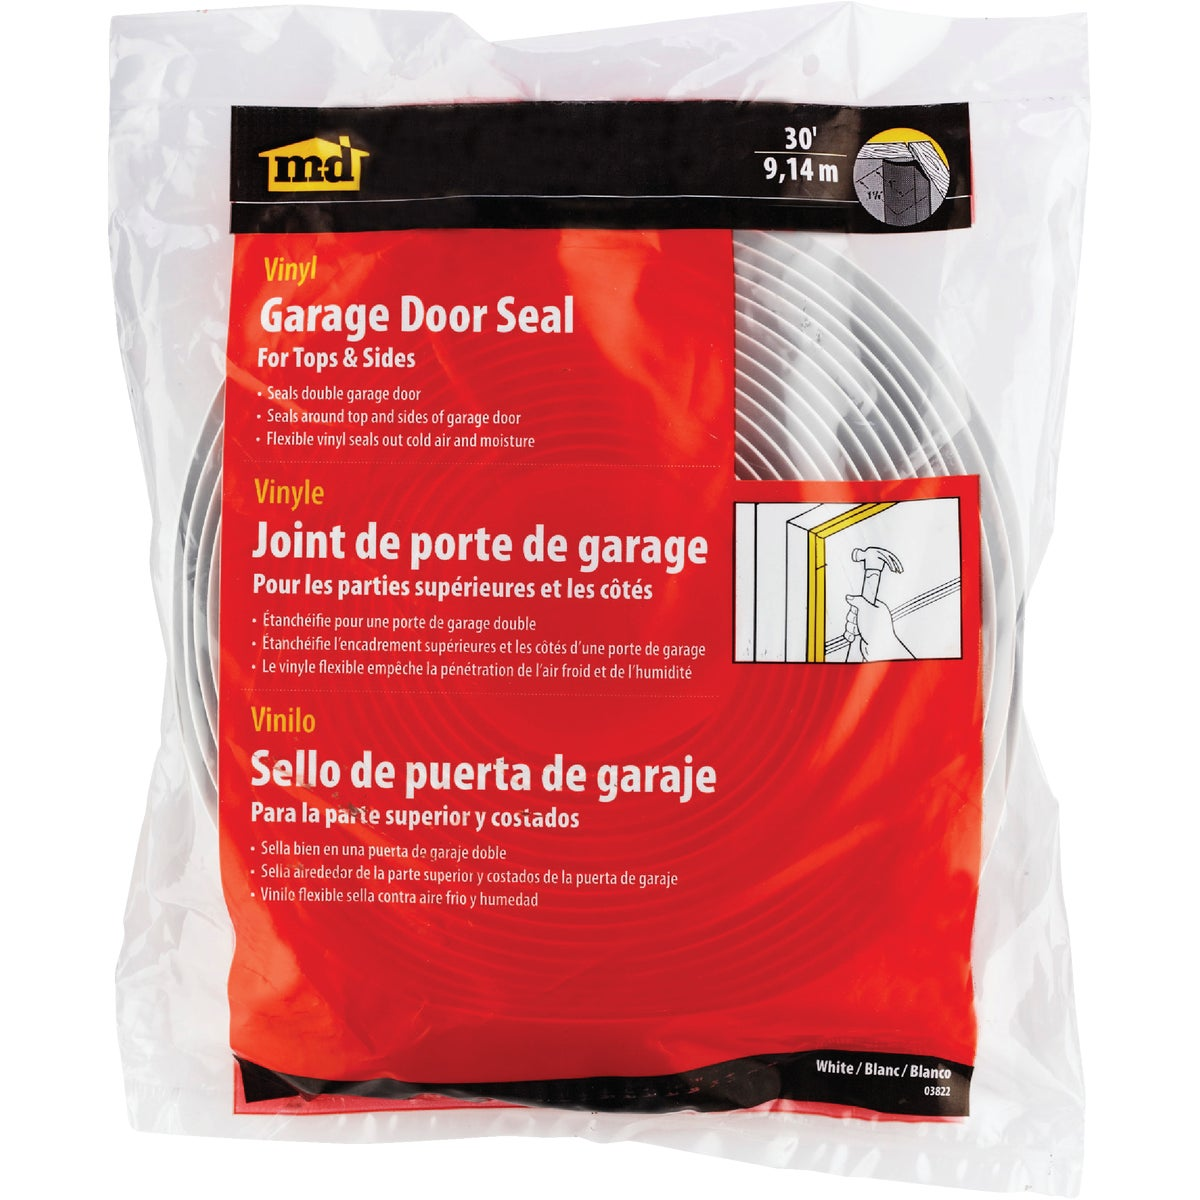 30' Wht Garage Door Seal